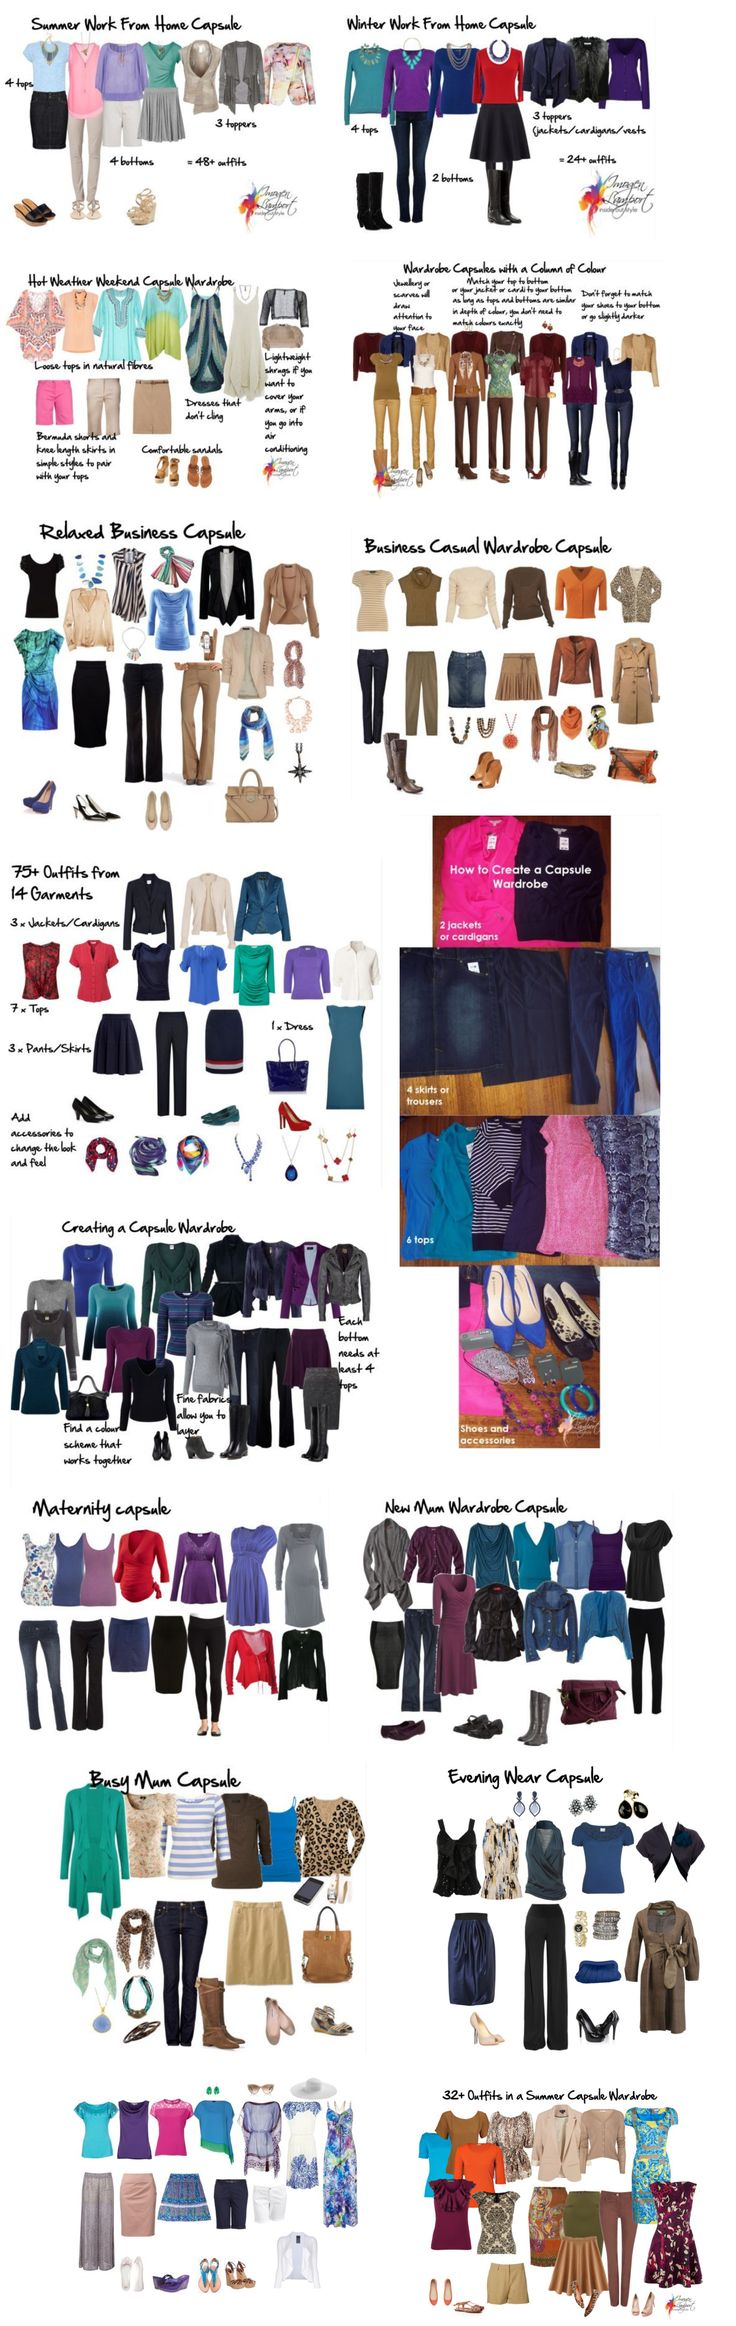 Capsule wardrobe, Imogen Lamport, Wardrobe Therapy, Inside out Style blog, Bespoke Image, Image Consultant, Colour Analysis